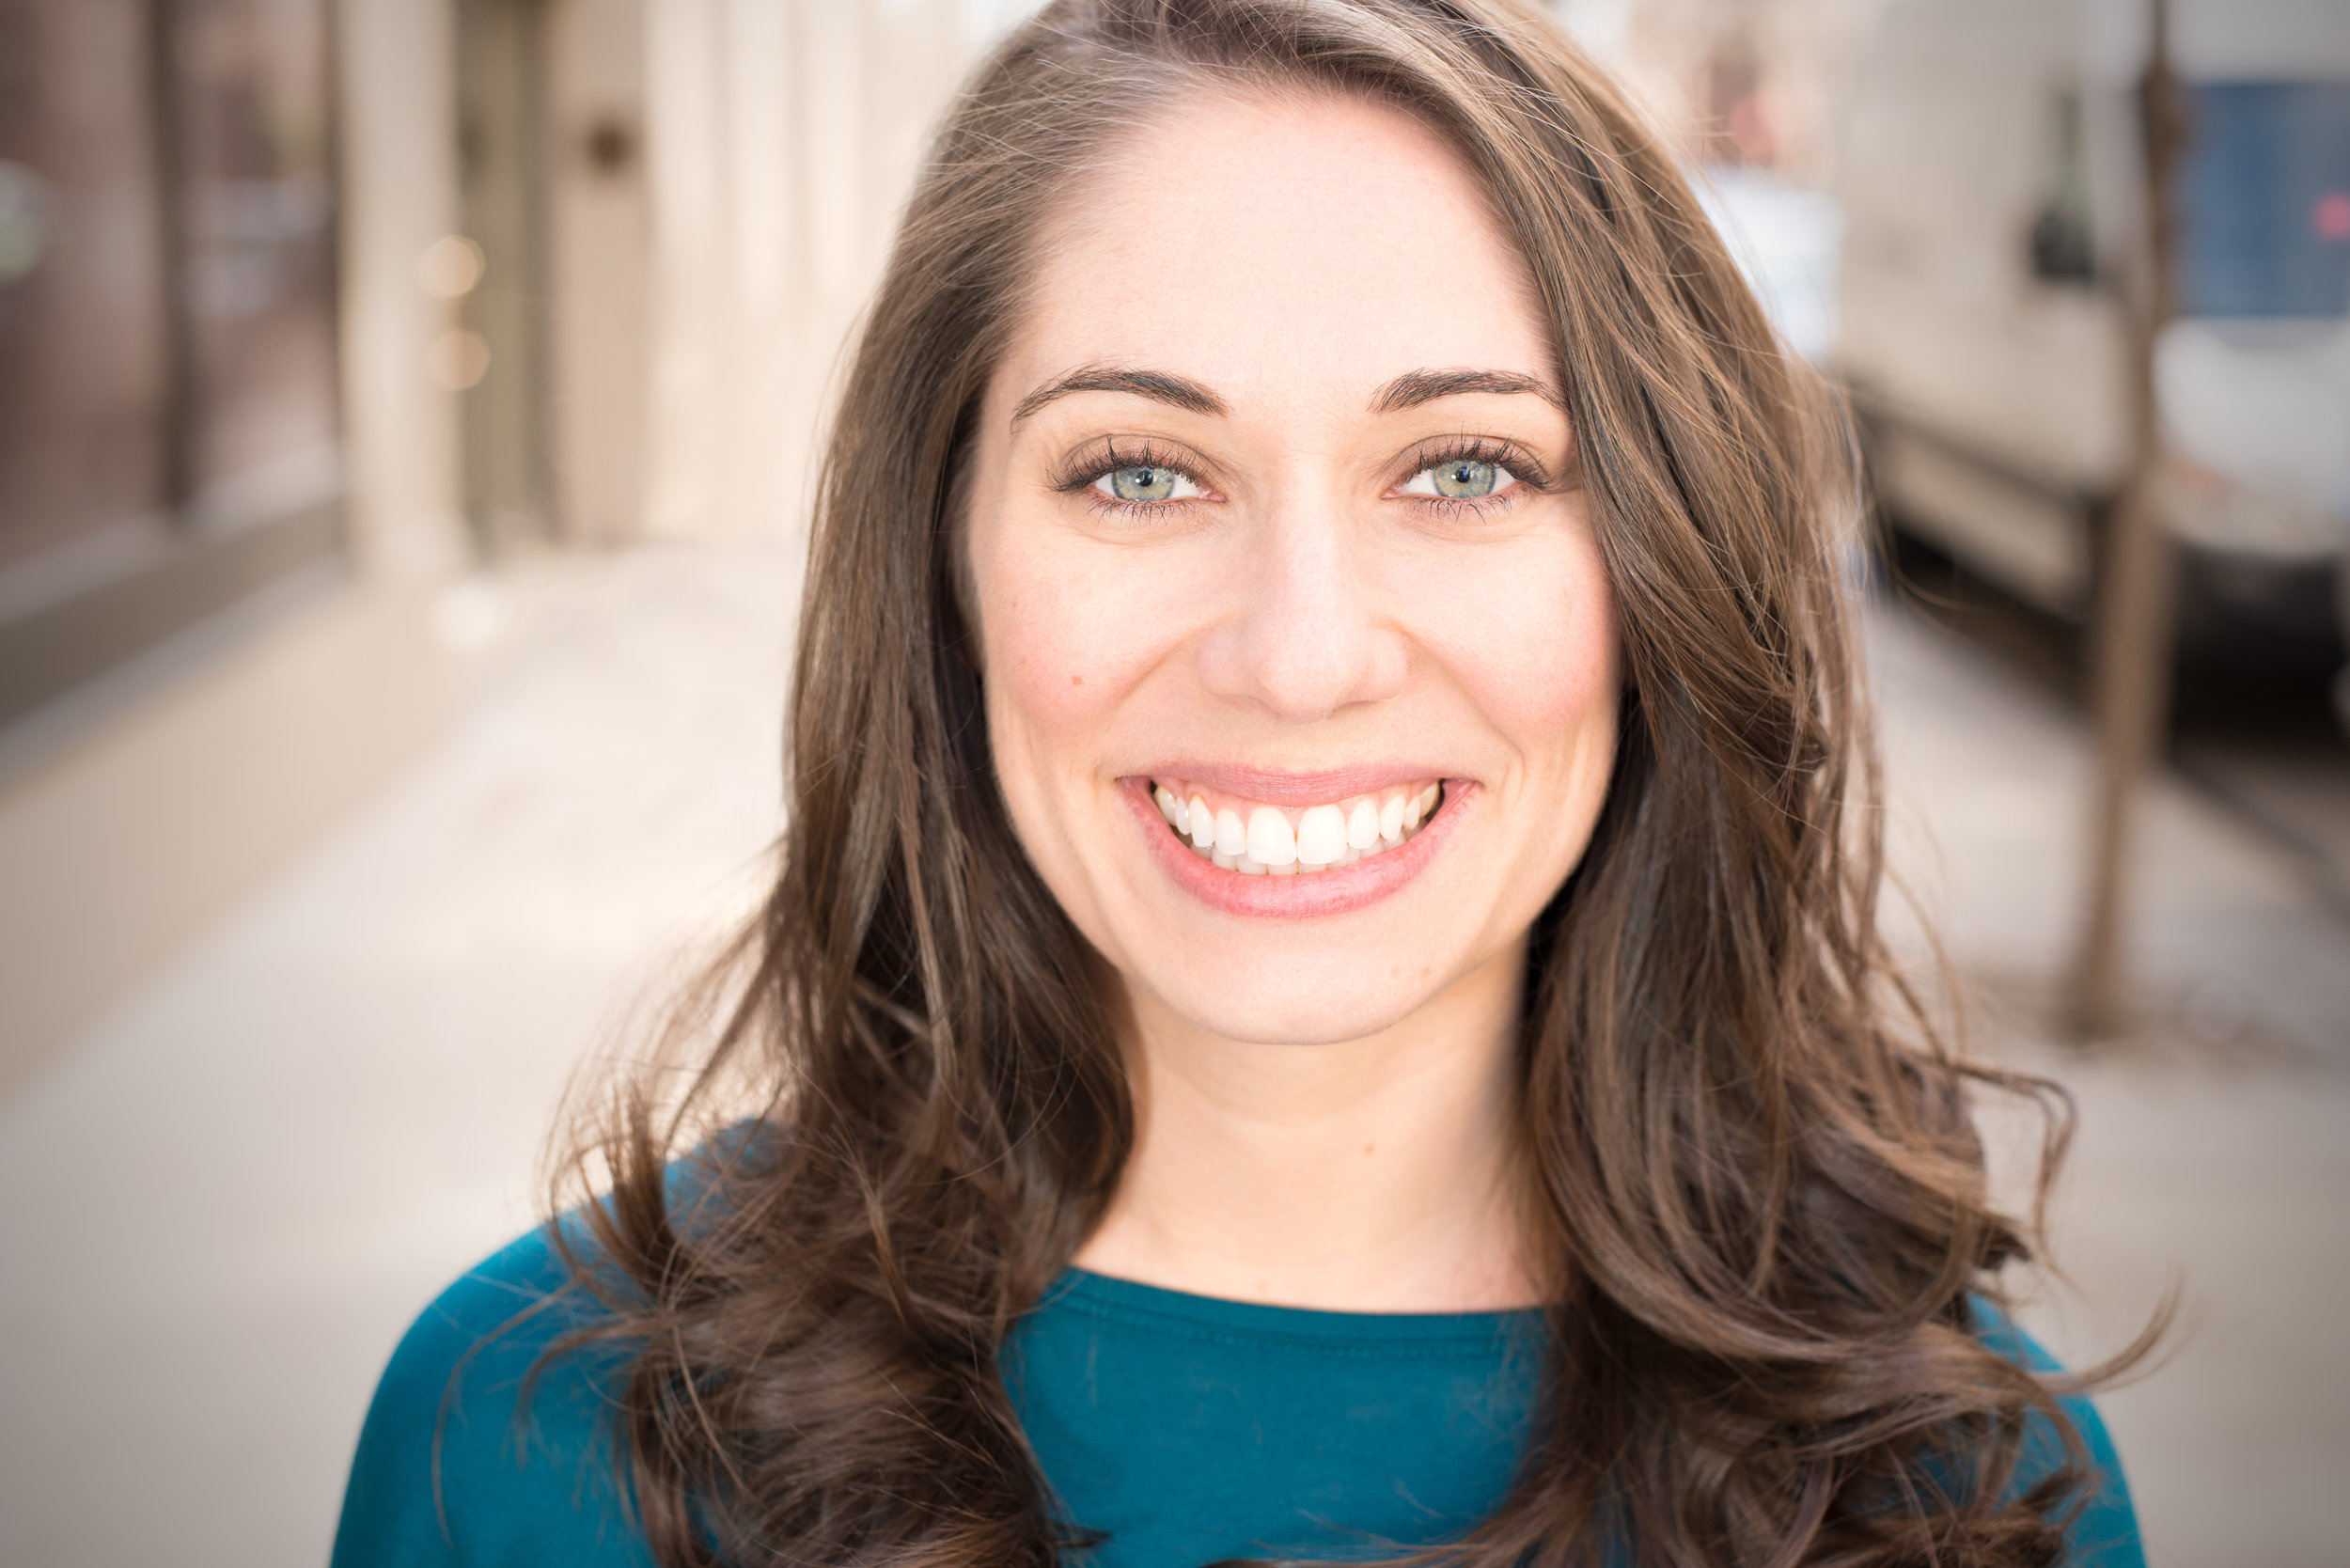 Megan - Megan is an actor/comedian who is a passionate story teller with an affinity for obscure history and food. When she's not tour guiding, you can catch her performing sketch and improv comedy at such venues as Carolines on Broadway and the UCB Theater. Catch her in the upcoming 2018/19 season: Bad Dates.